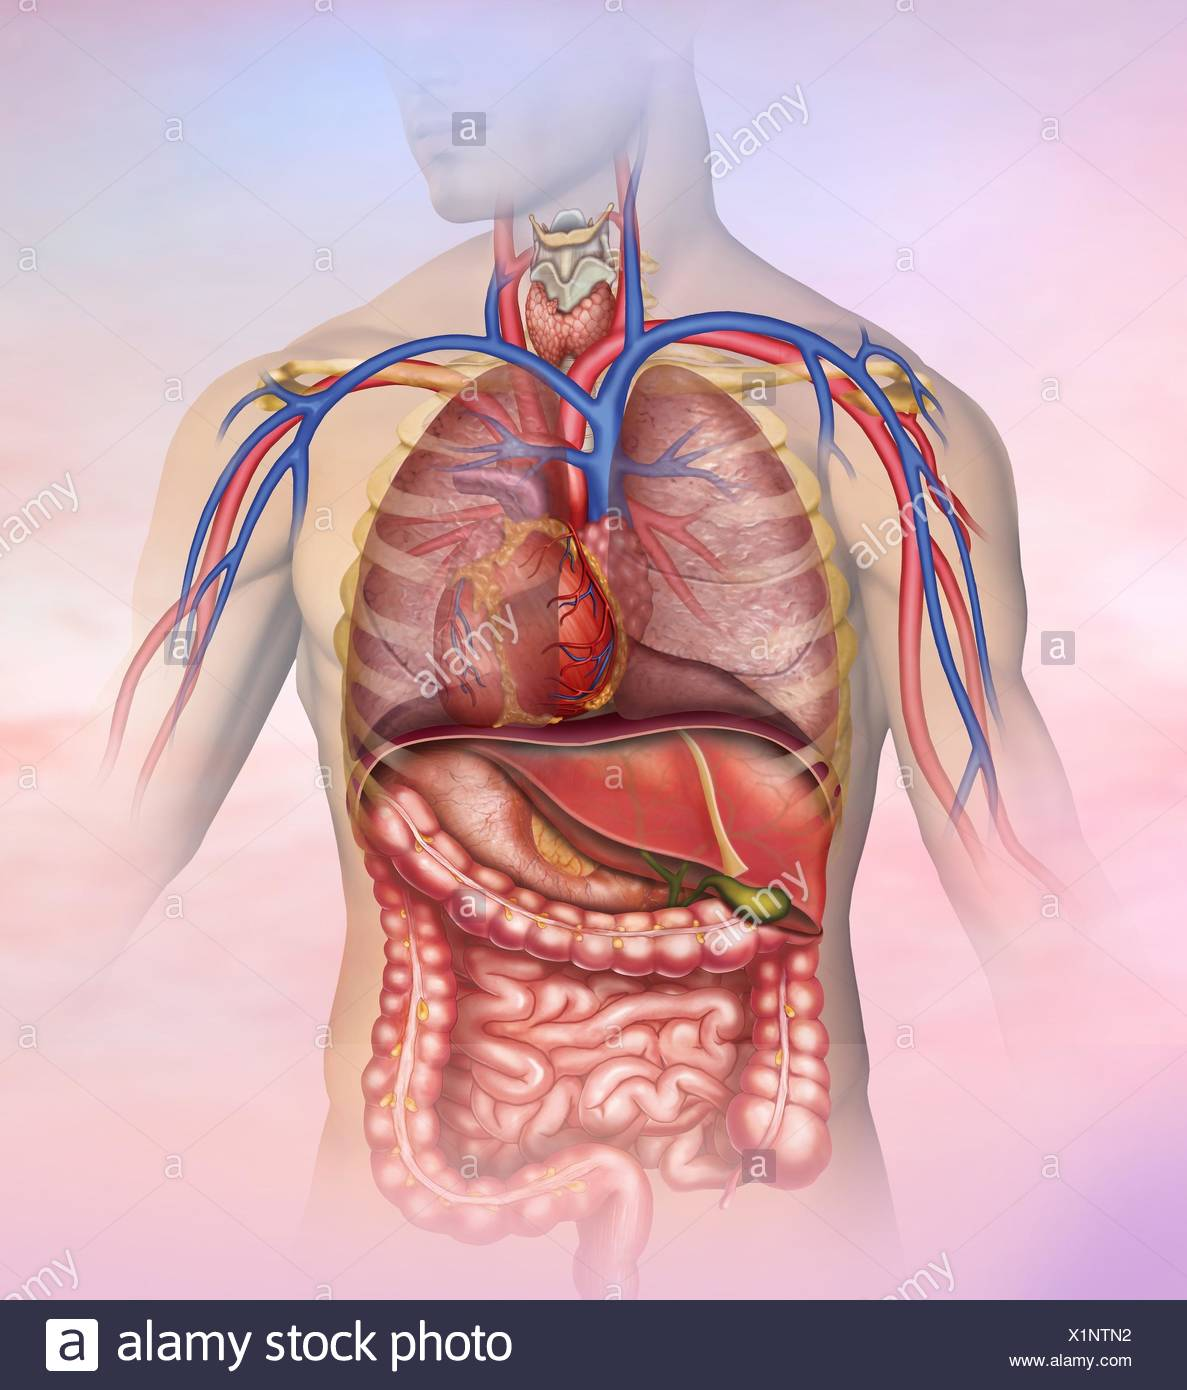 Anatomical and descriptive illustration of the thorax and abdomen of the human body. - Stock Image